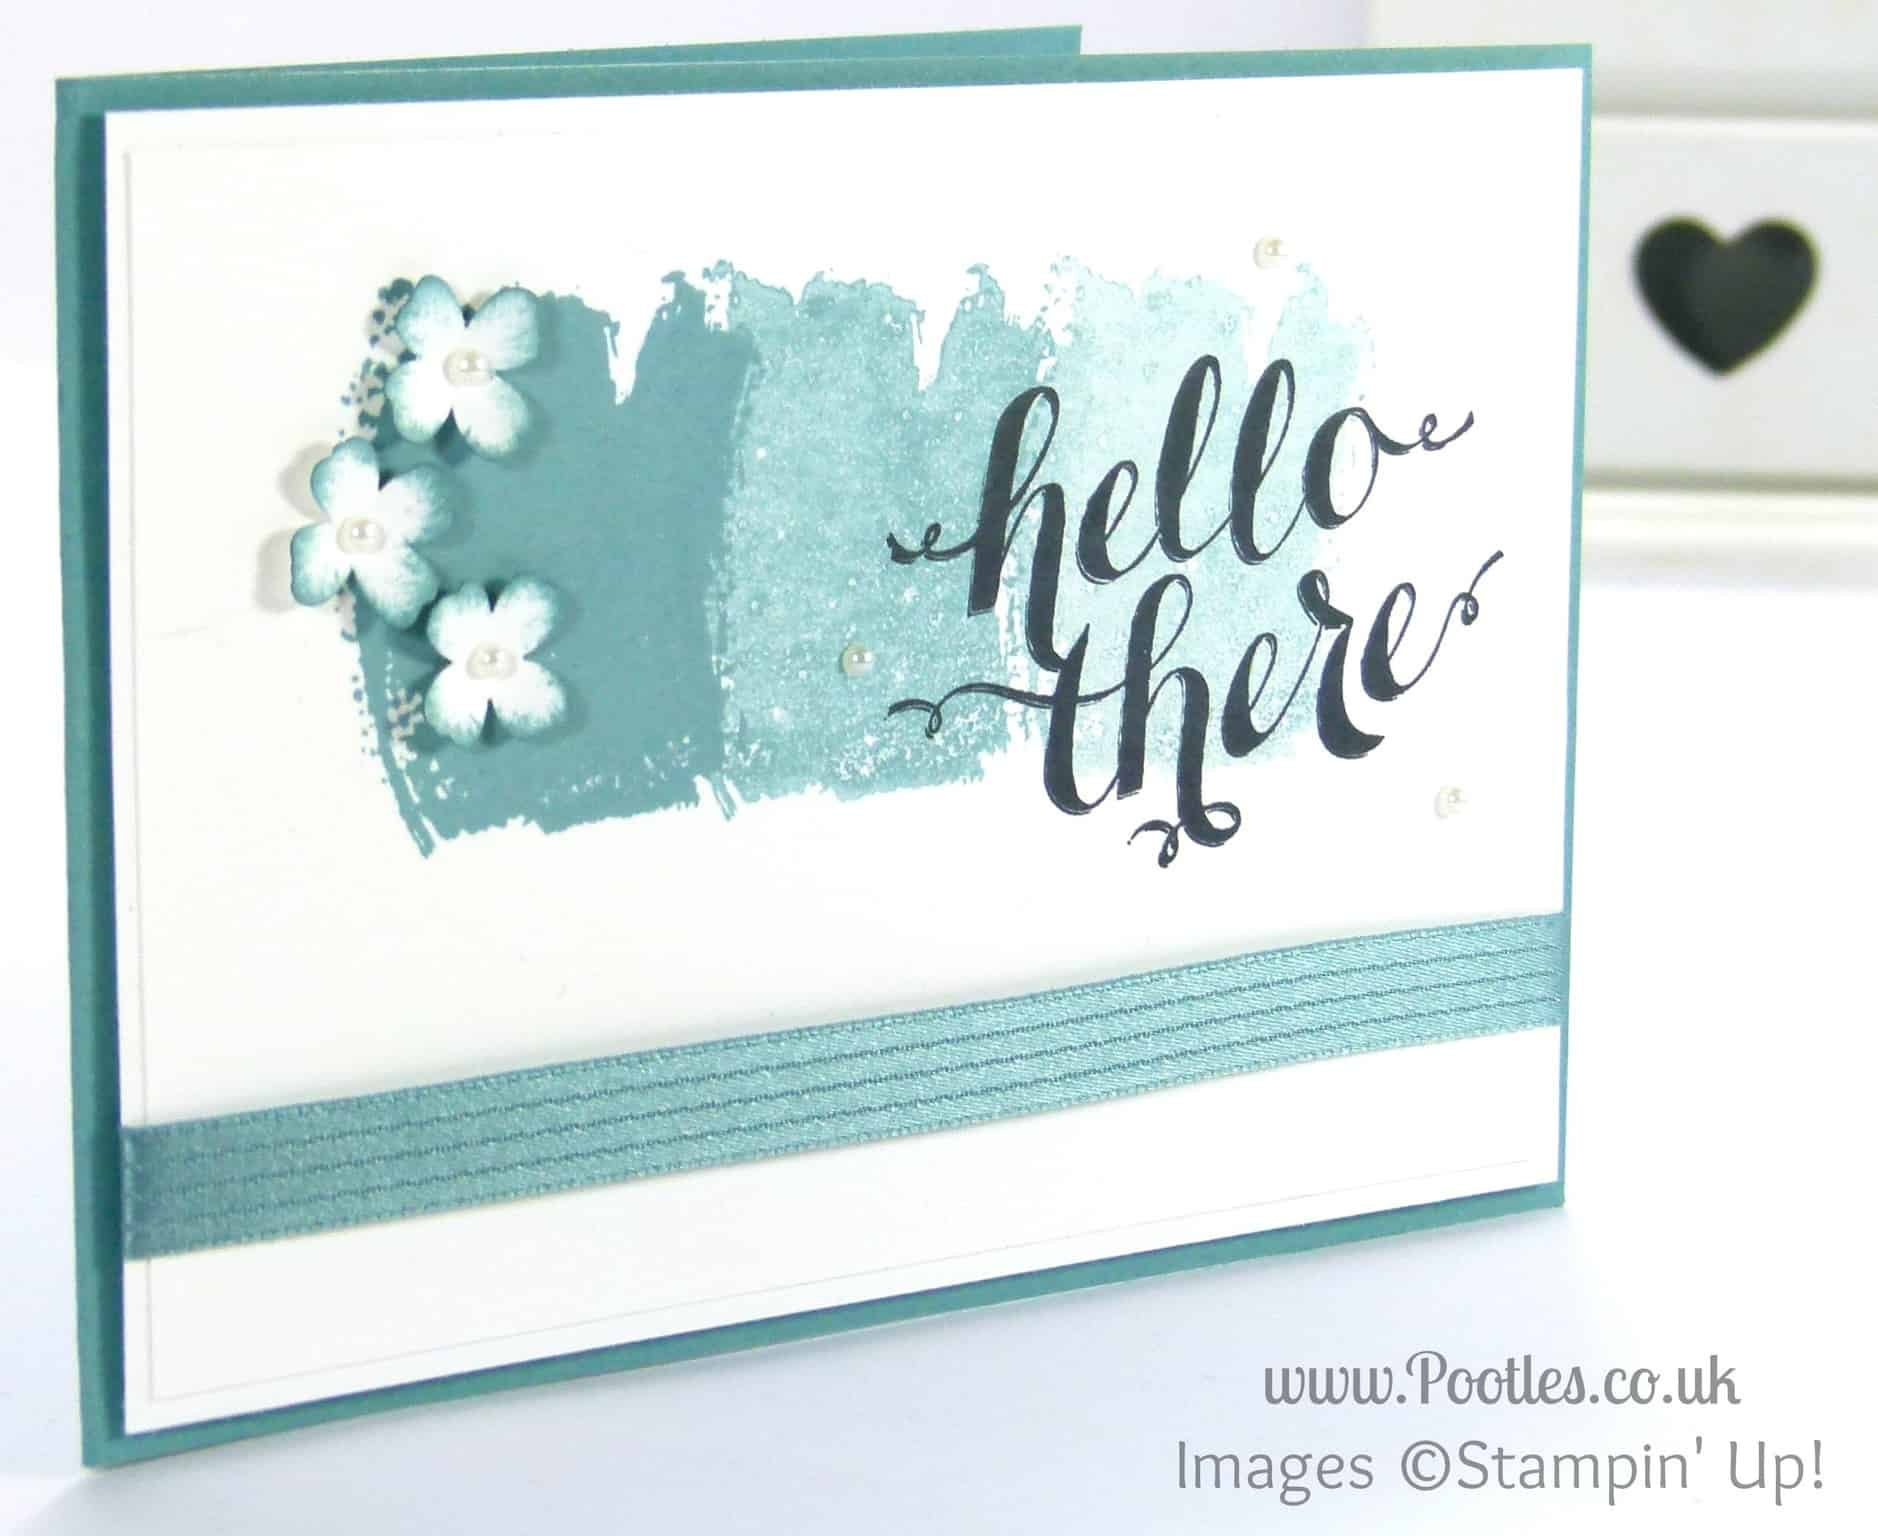 Stampin' Up! UK Demonstrator Pootles - In Colour Thank You Card Tutorial + Sponge Prep Tip